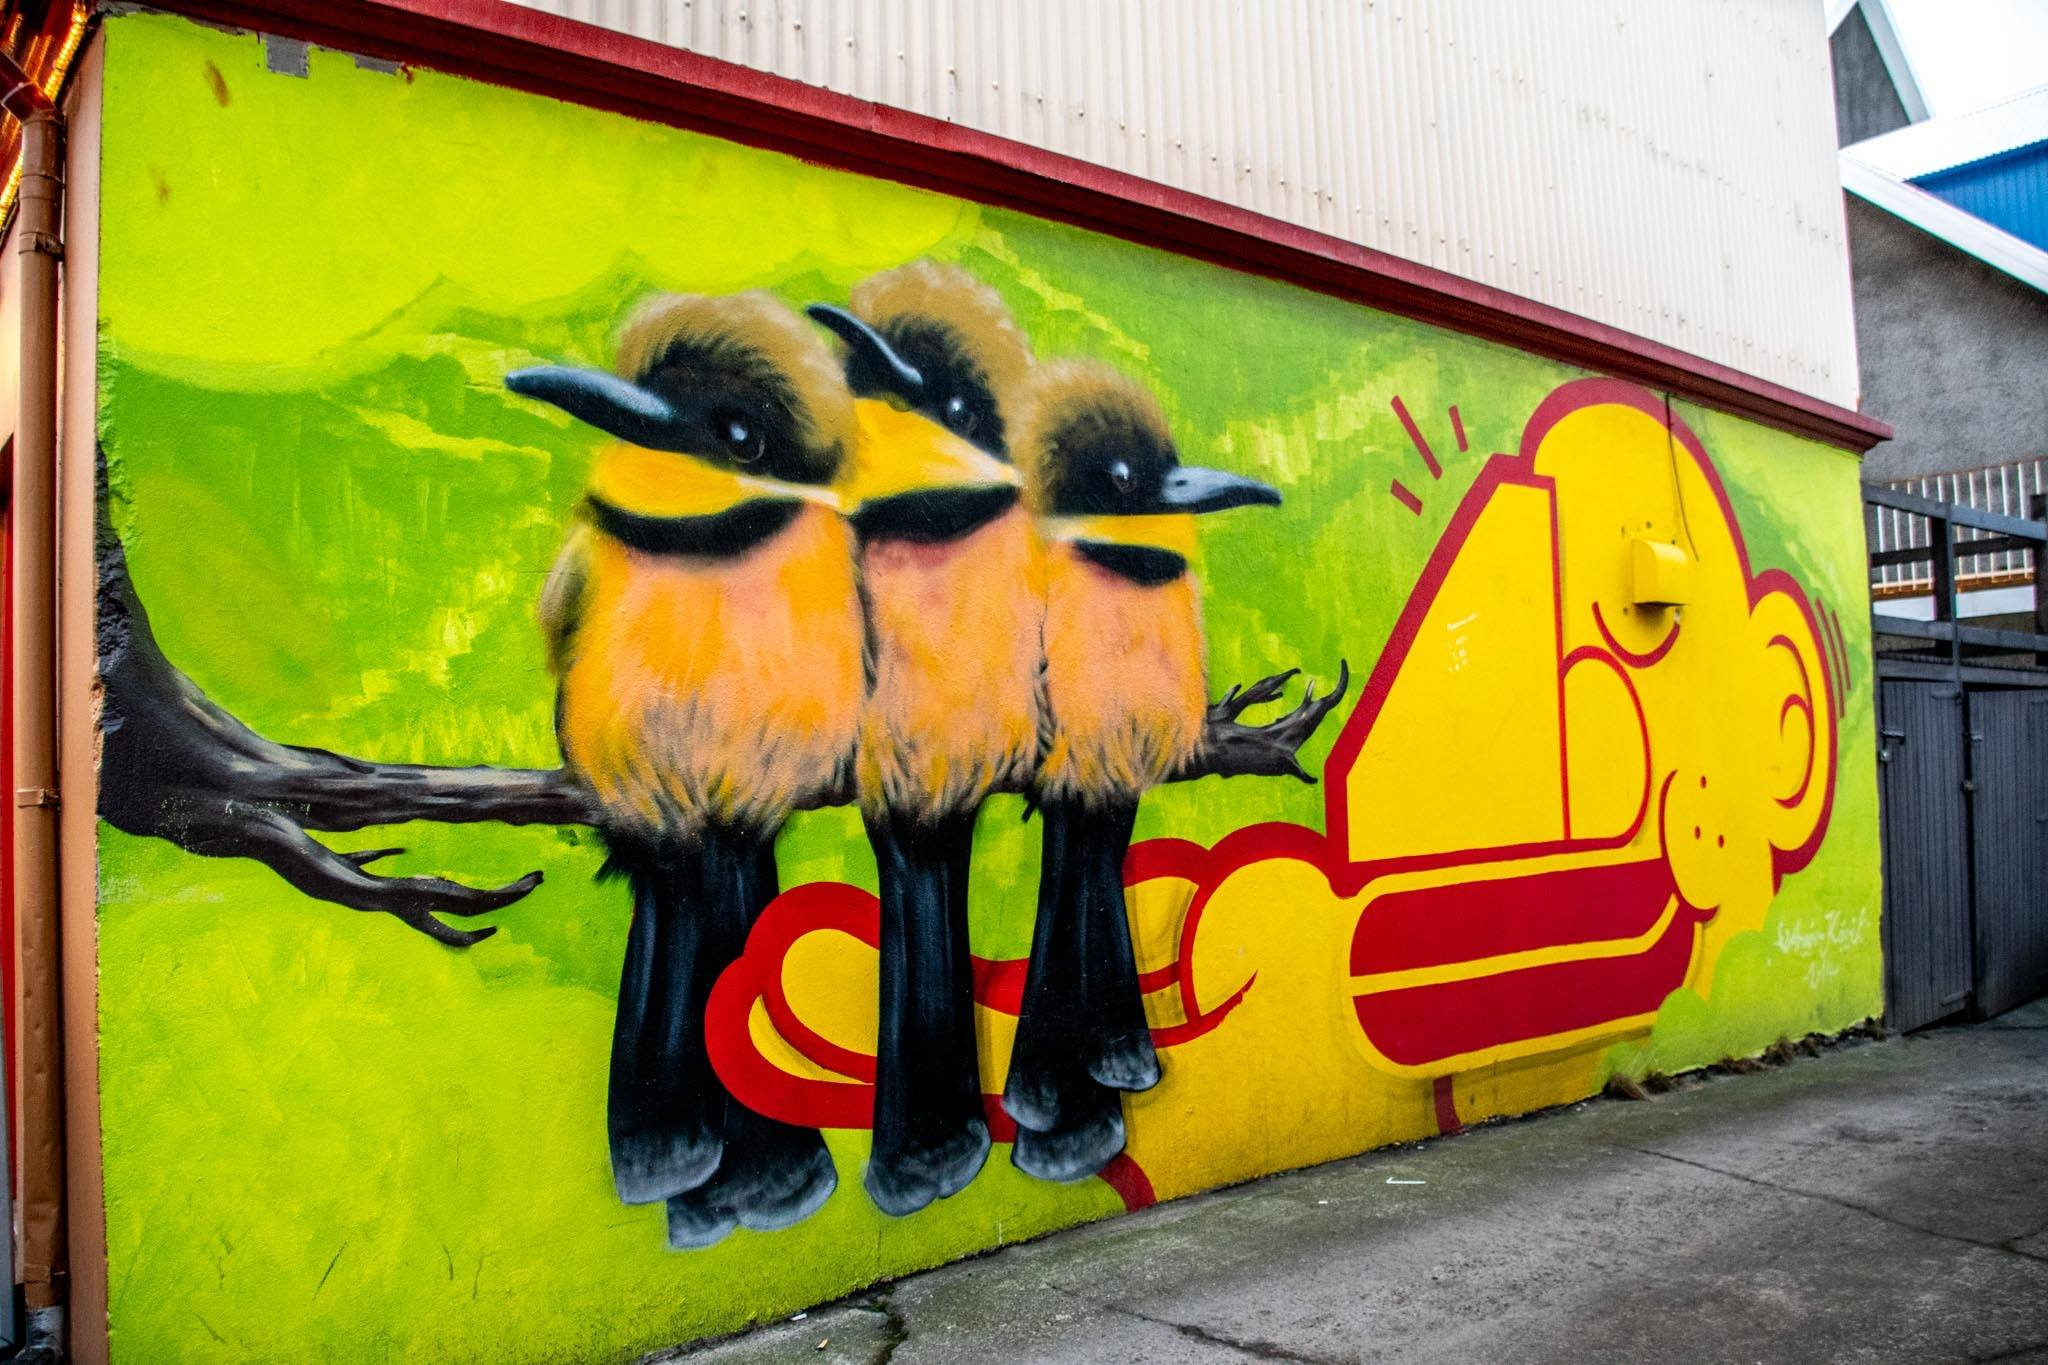 Three birds wall mural is an example of Iceland street art in the Reykjavik alleys and streets.